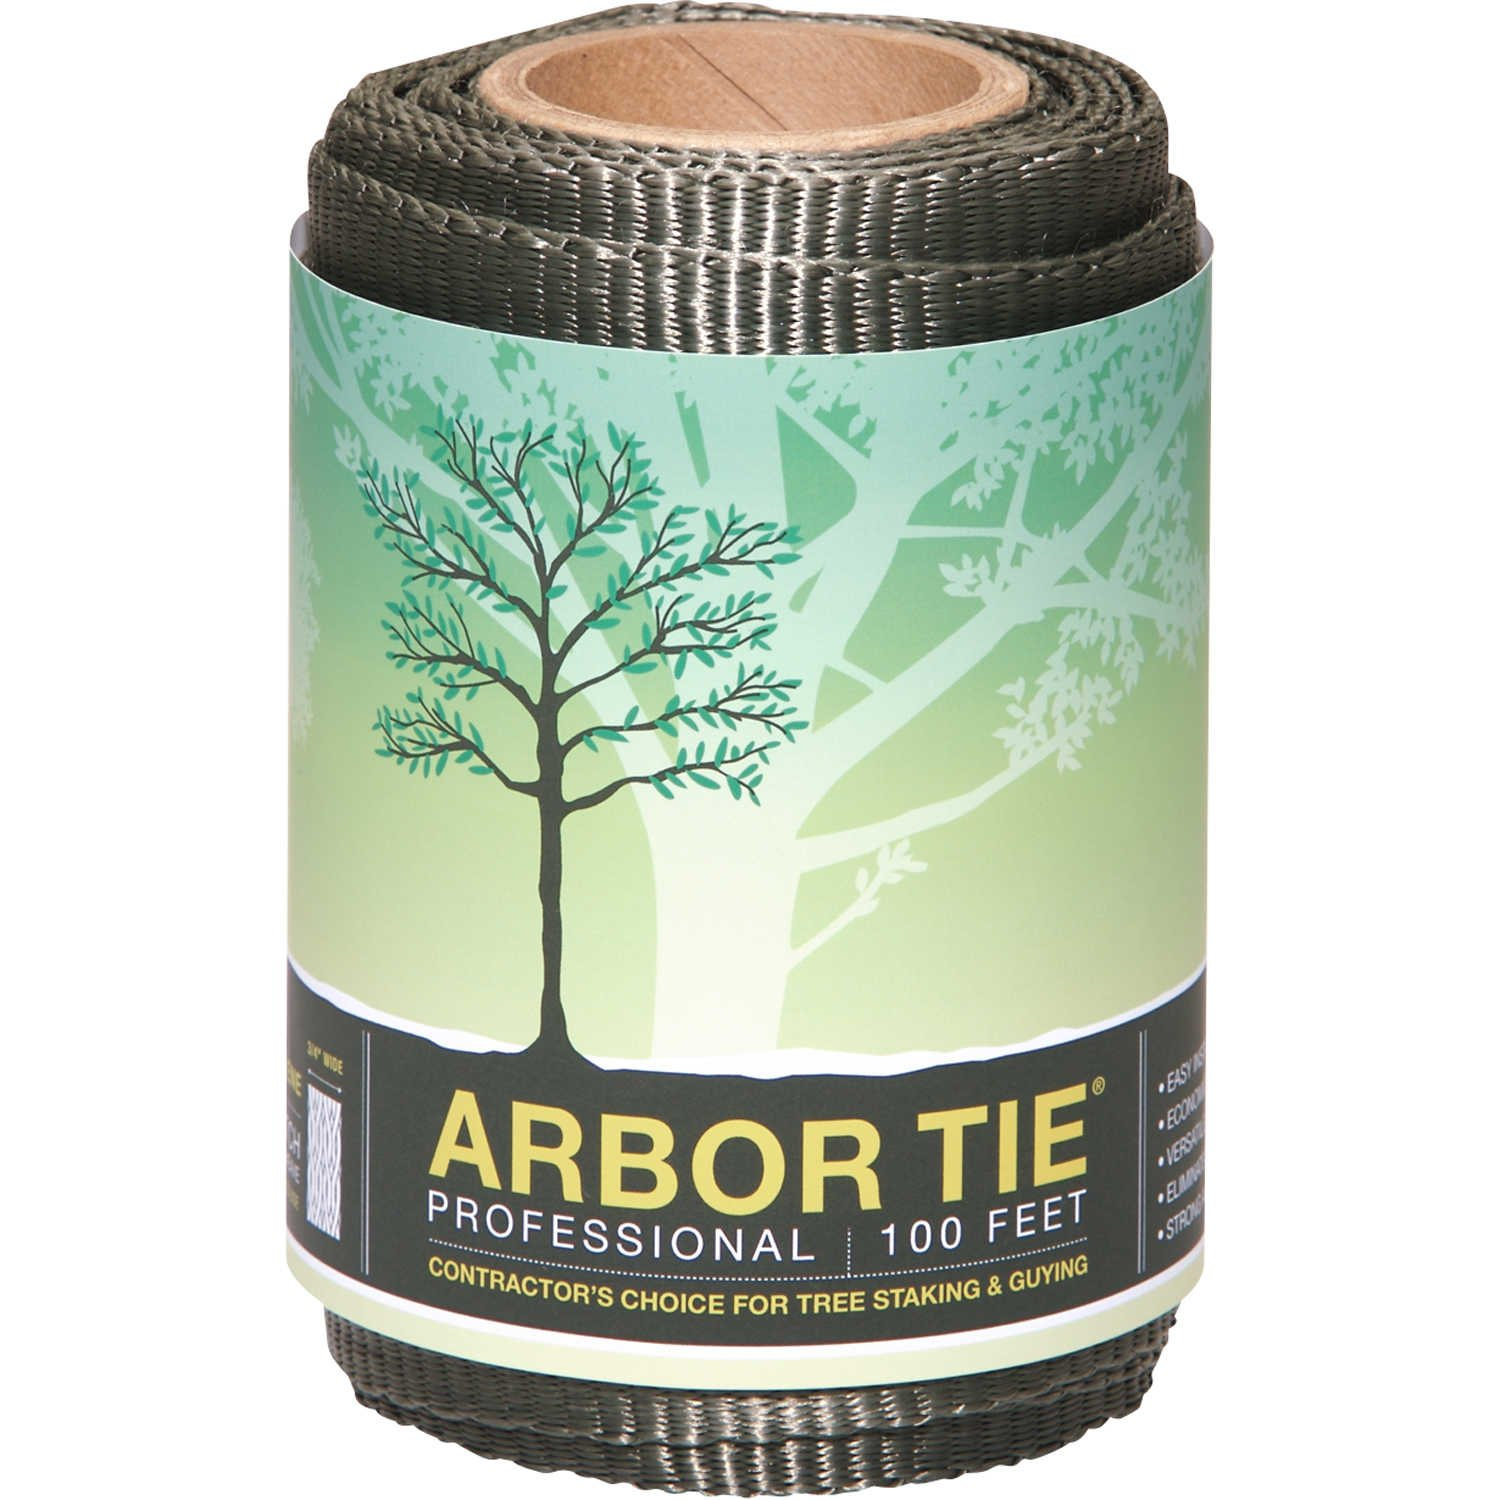 DeepRoot Arbortie Staking and Guying Material, 100-Feet Roll, Olive